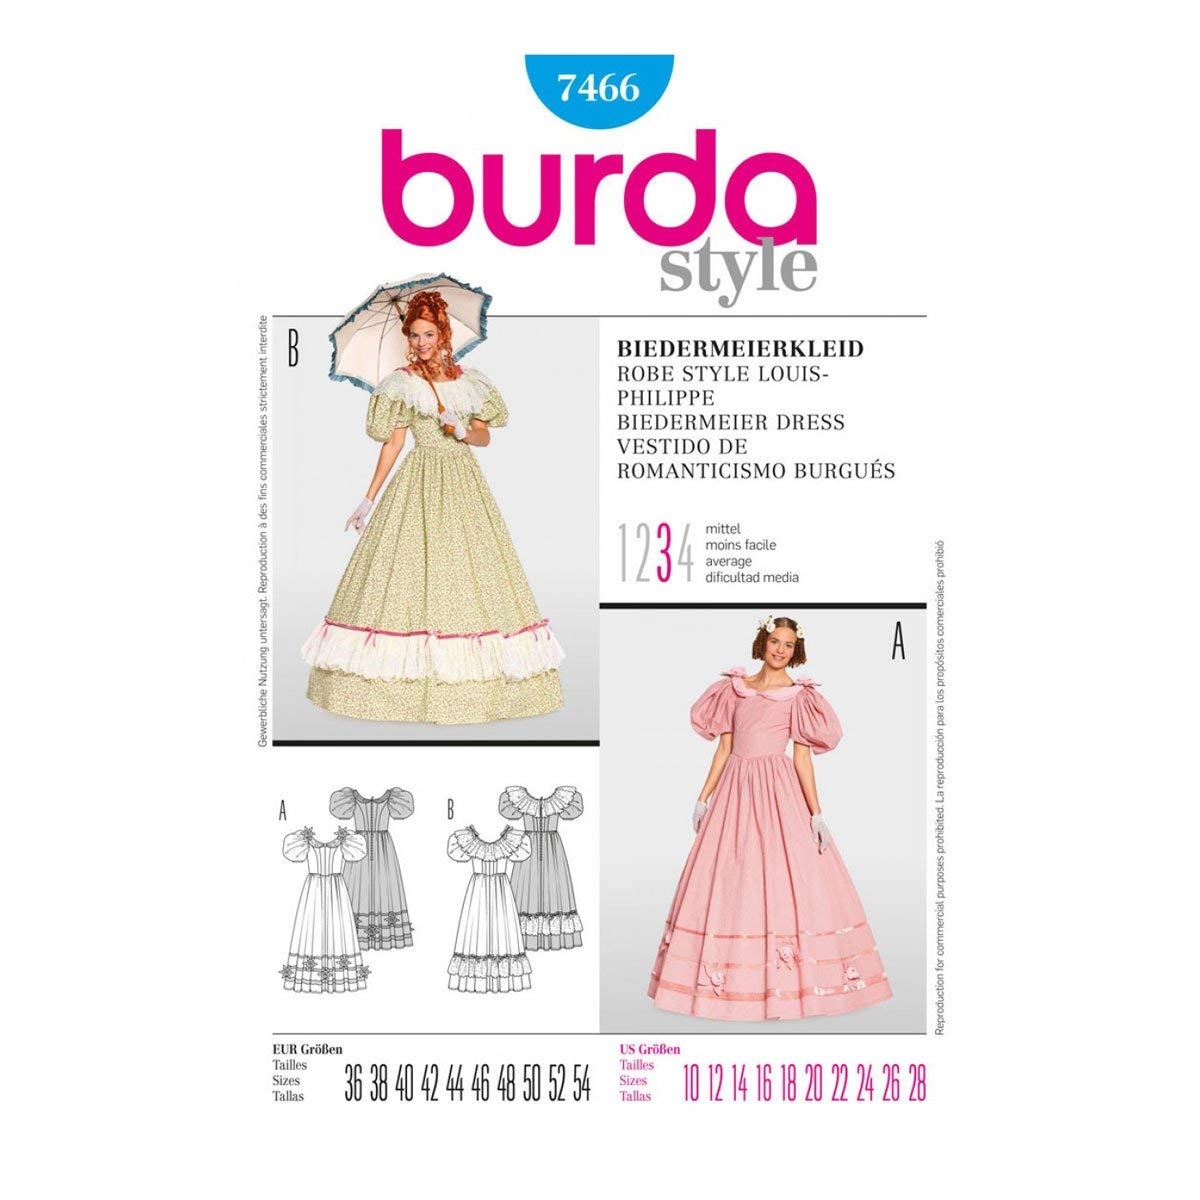 Steampunk Sewing Patterns- Dresses, Coats, Plus Sizes, Men's Patterns OOP Burda Historical Costume Pattern 7466. Misses Szs 10121416182022242628 Civil War Era Dresses $10.46 AT vintagedancer.com